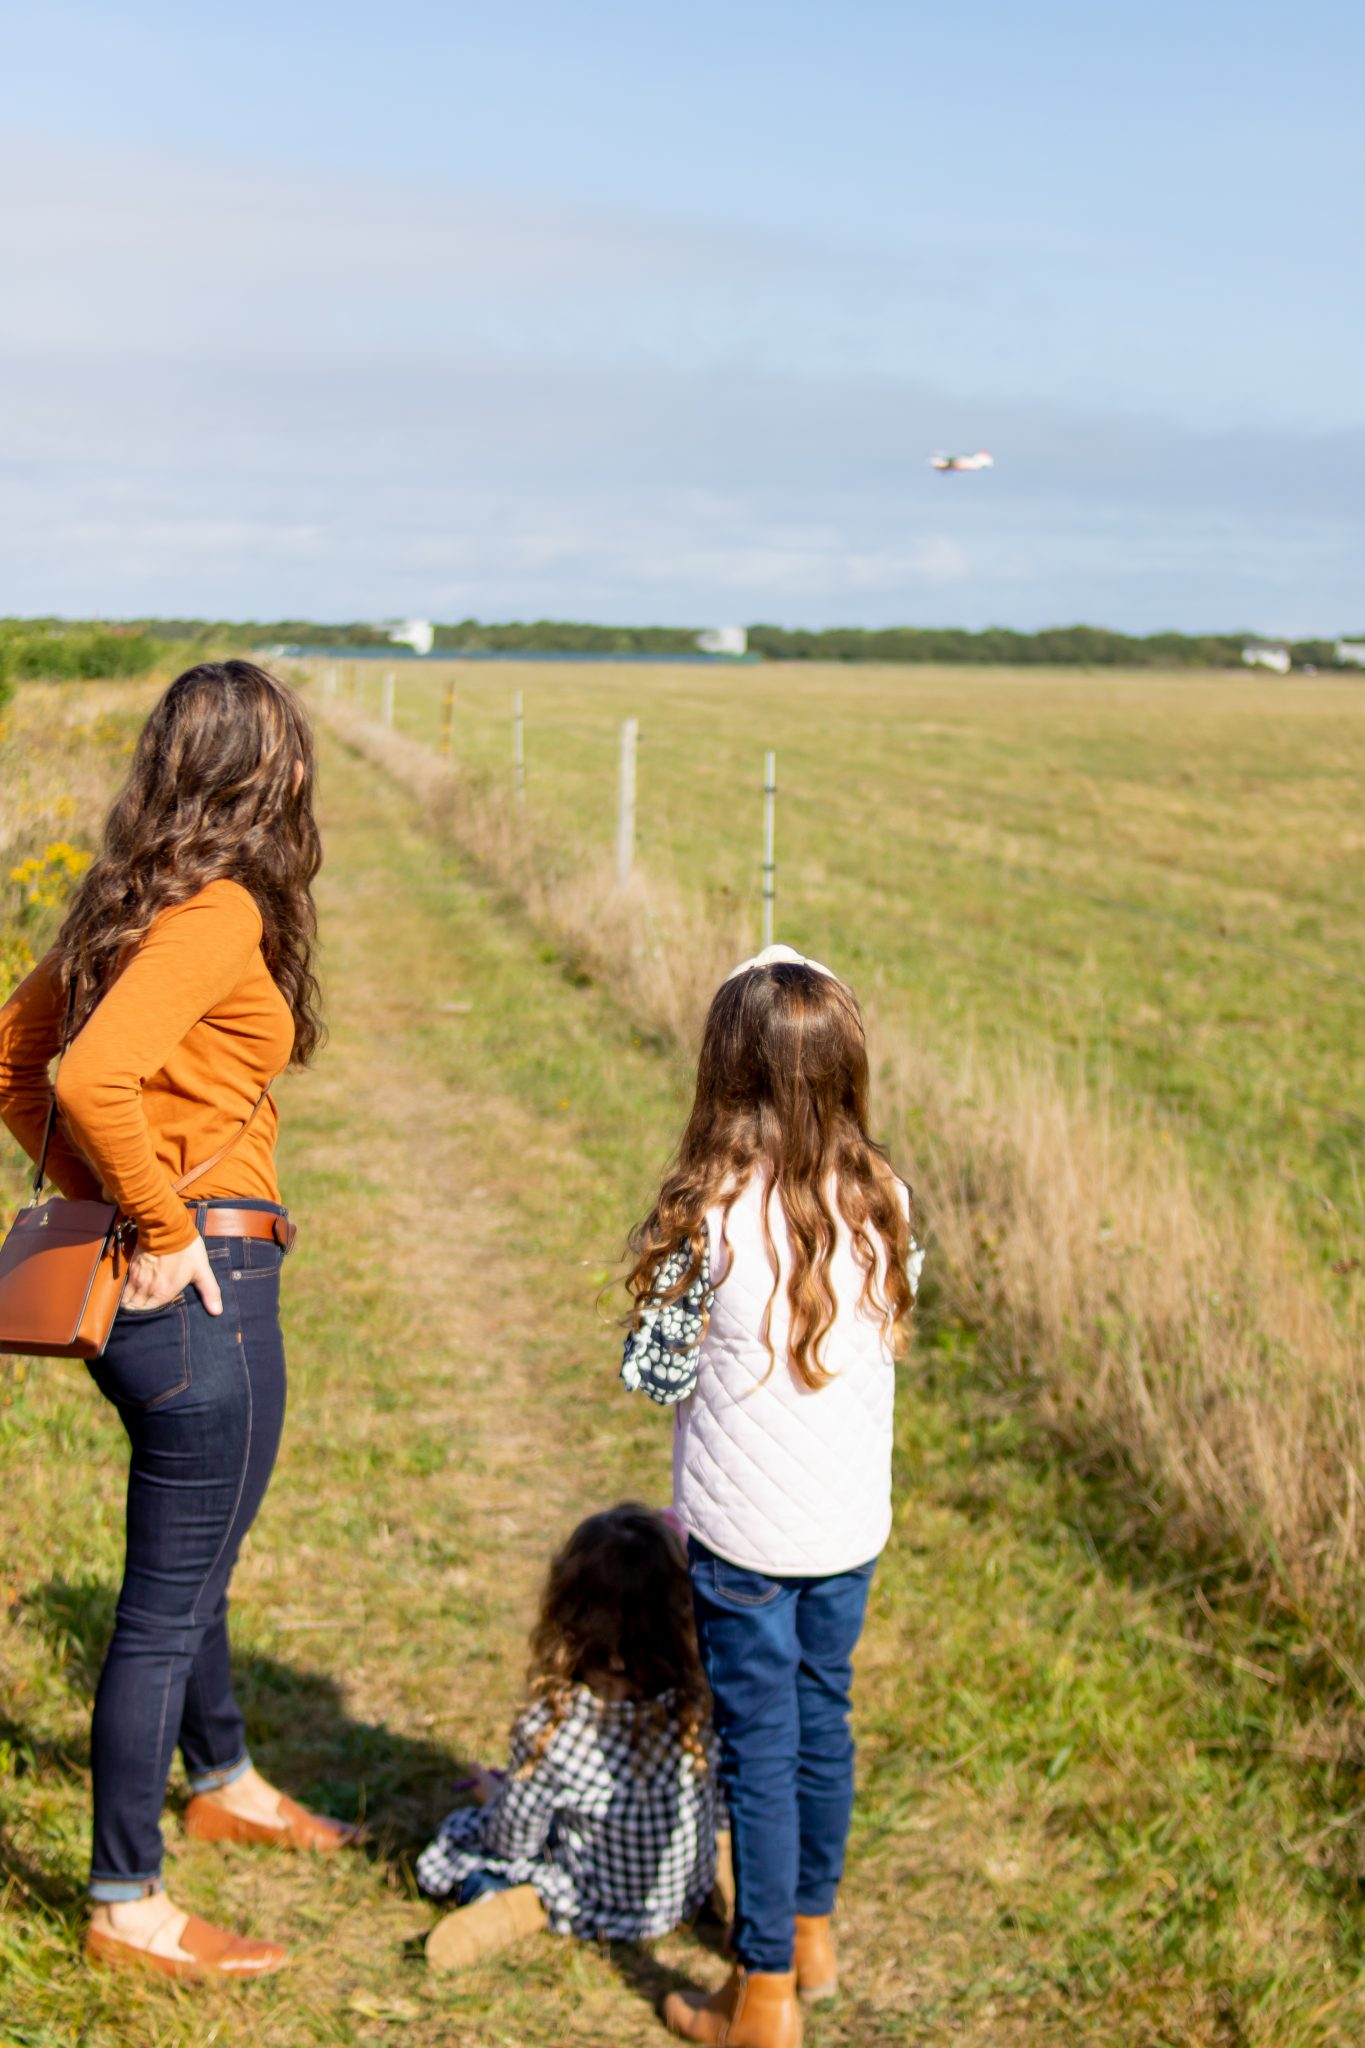 Mom and daughters looking at airplane taking off at Katama Airfield